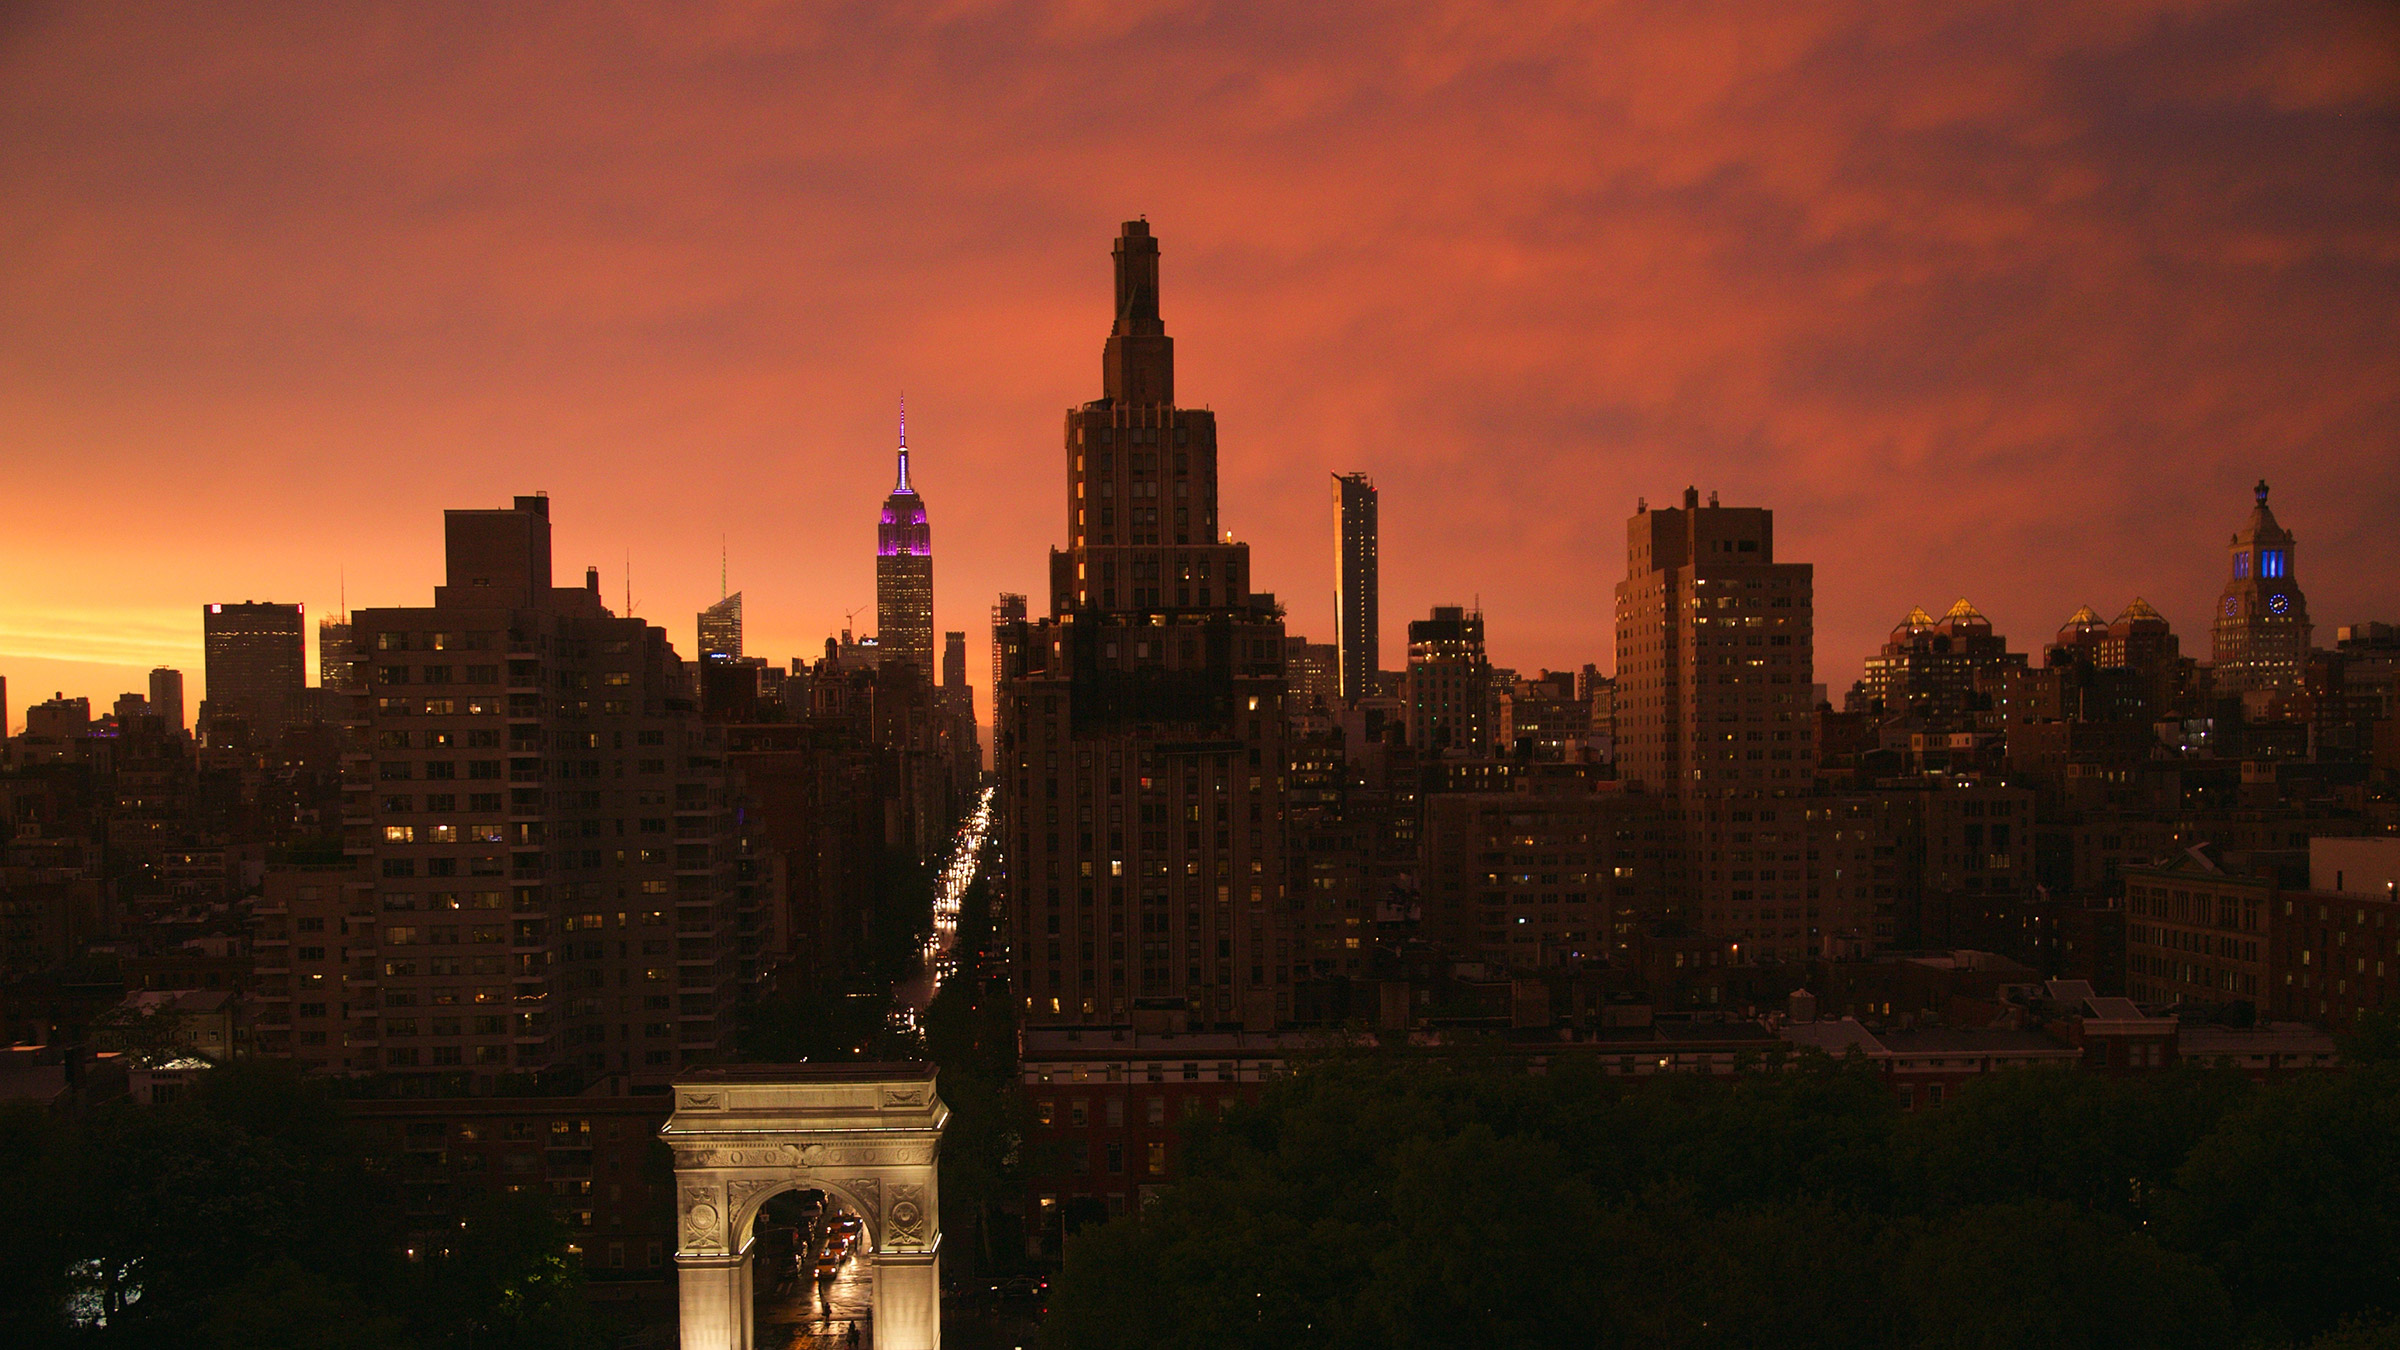 Washington Square Park from aerial view at sunset